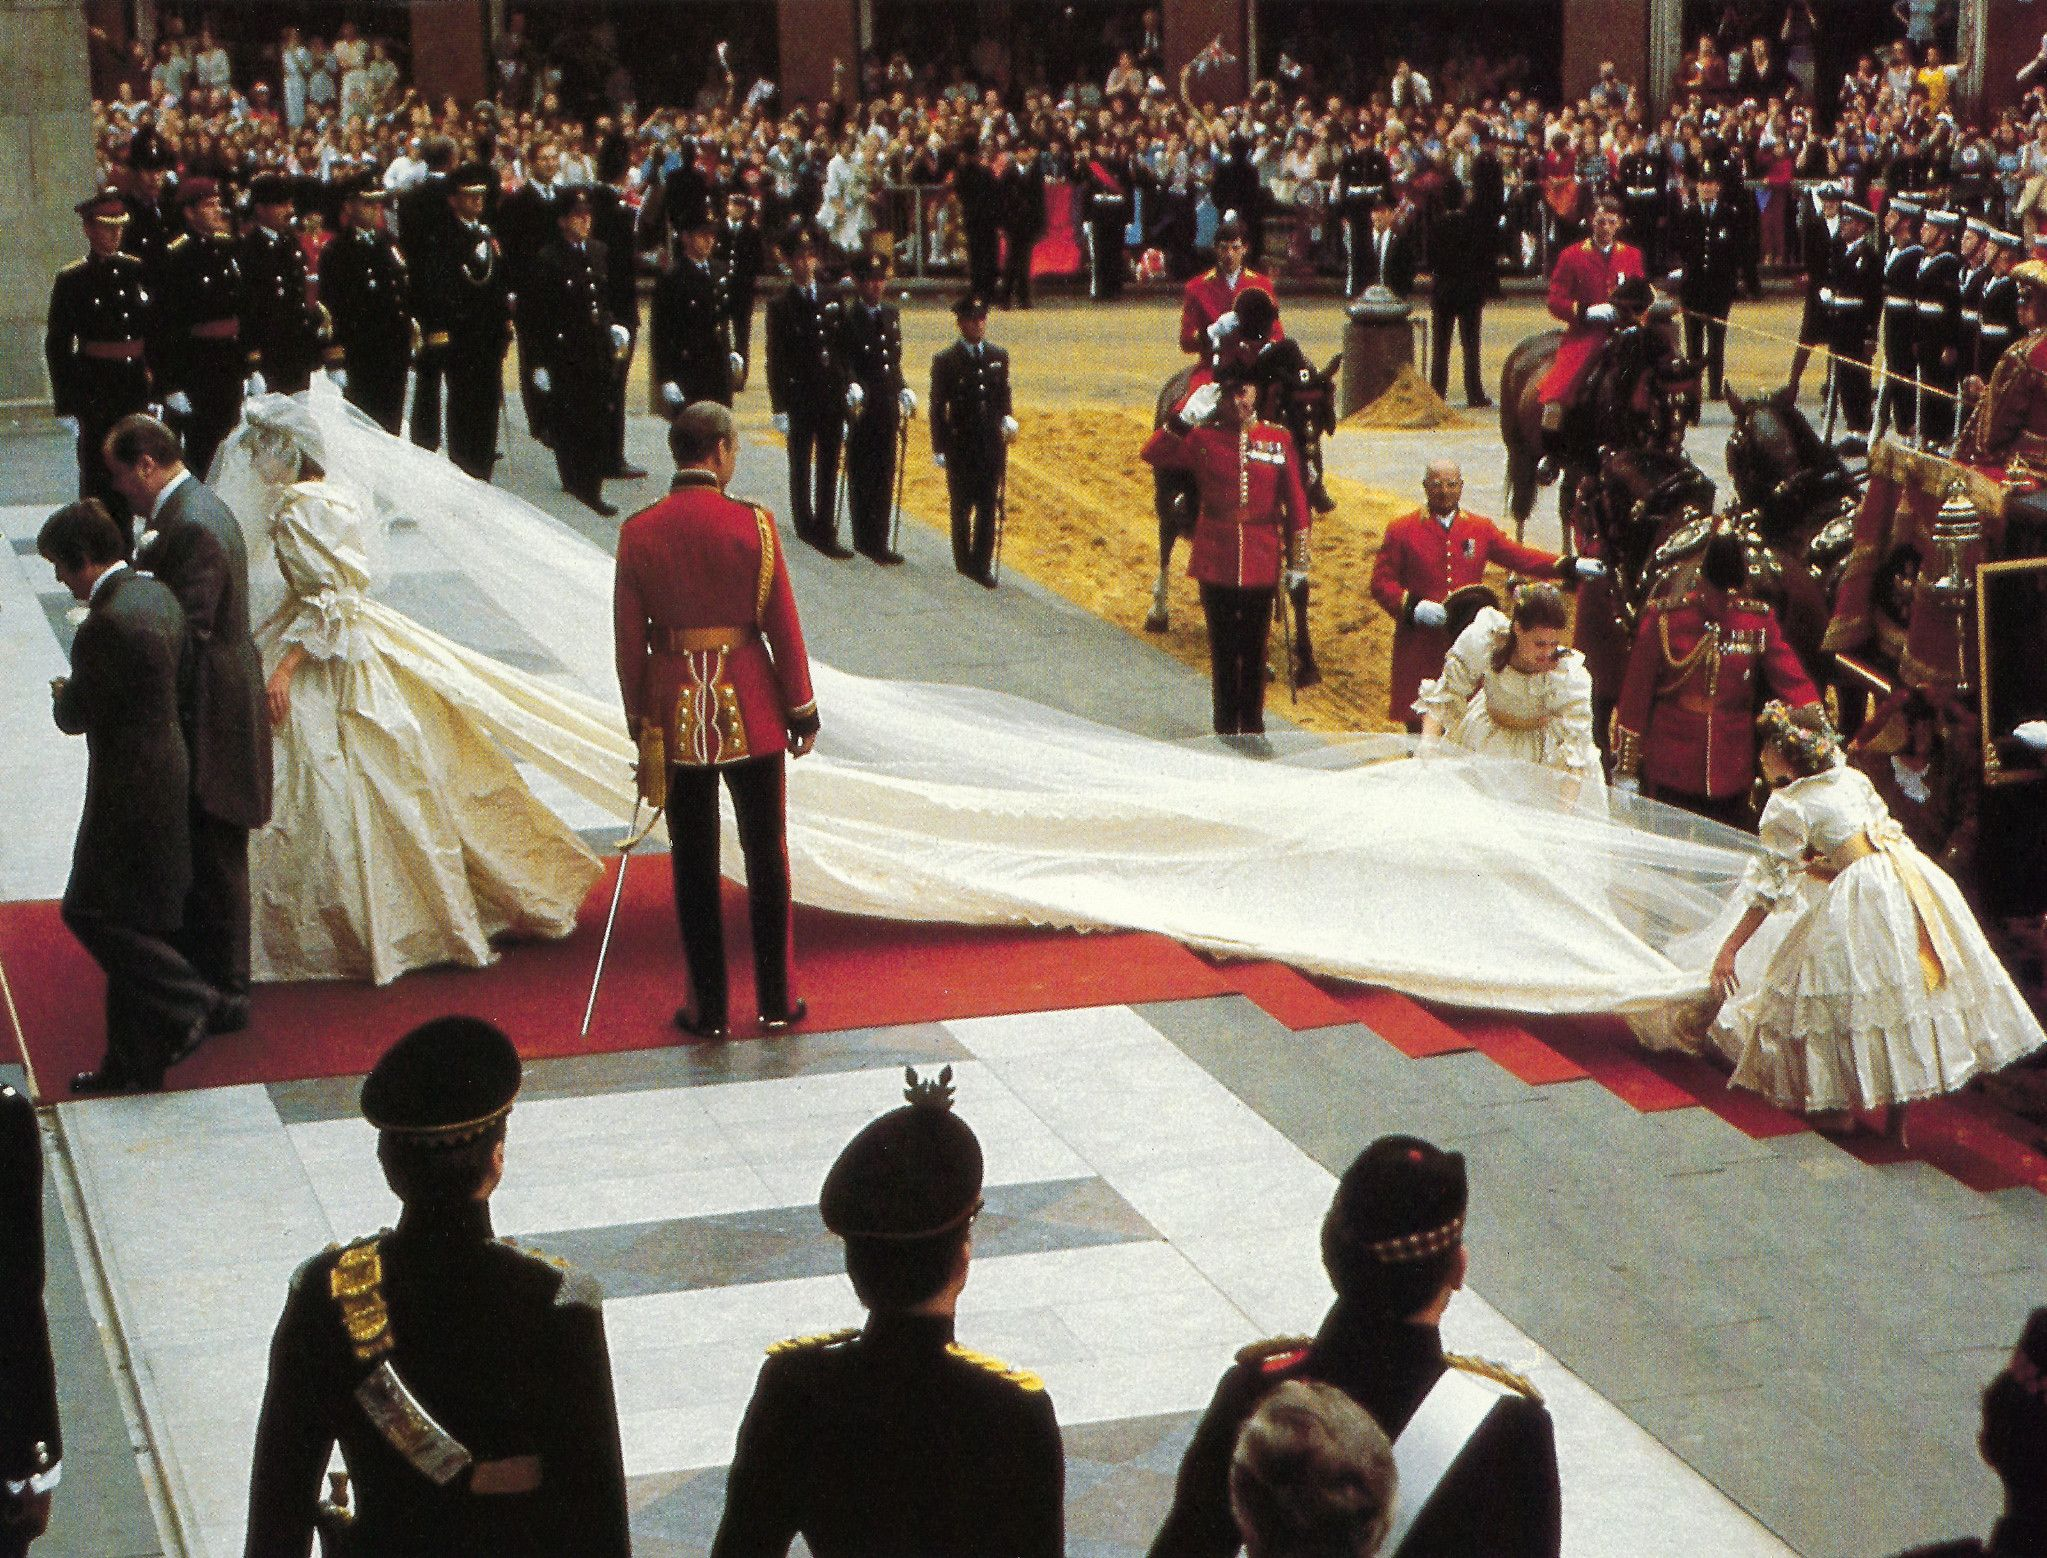 Princess Diana Memorabilia Her Attendants Straighten The 25 Foot Train On Lady Diana S Wedding Grown As She Prepares To Enter St Paul S Cathedral July 29 1 Diana Wedding Princess Diana Princess Diana And Charles [ 1558 x 2047 Pixel ]